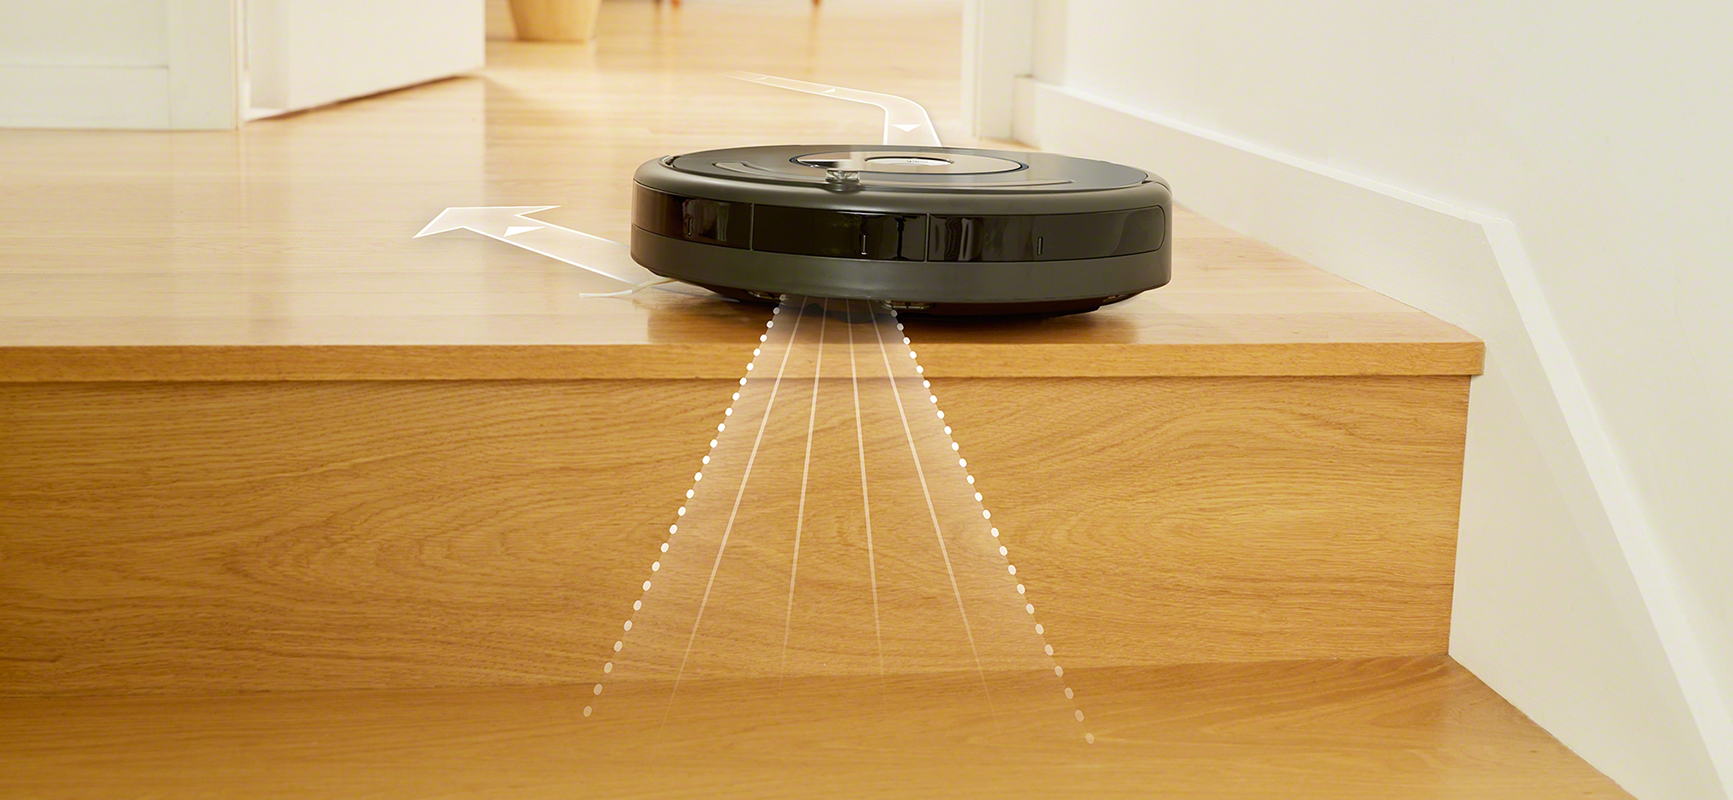 iRobot's Roomba 690 navigating room